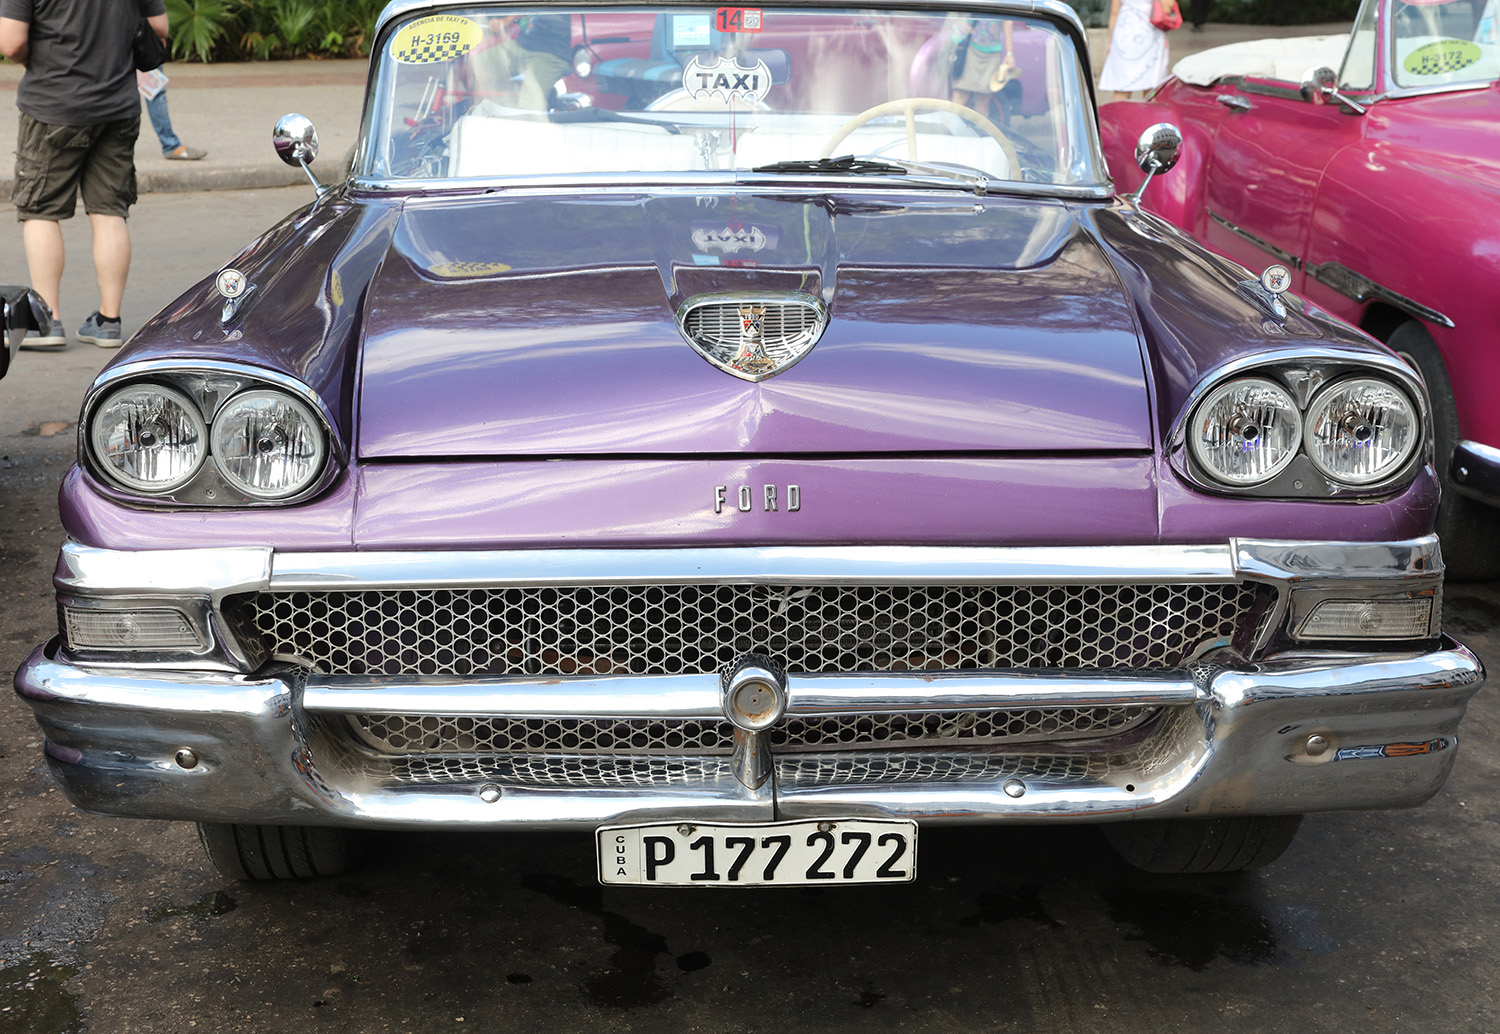 The Purple Ford